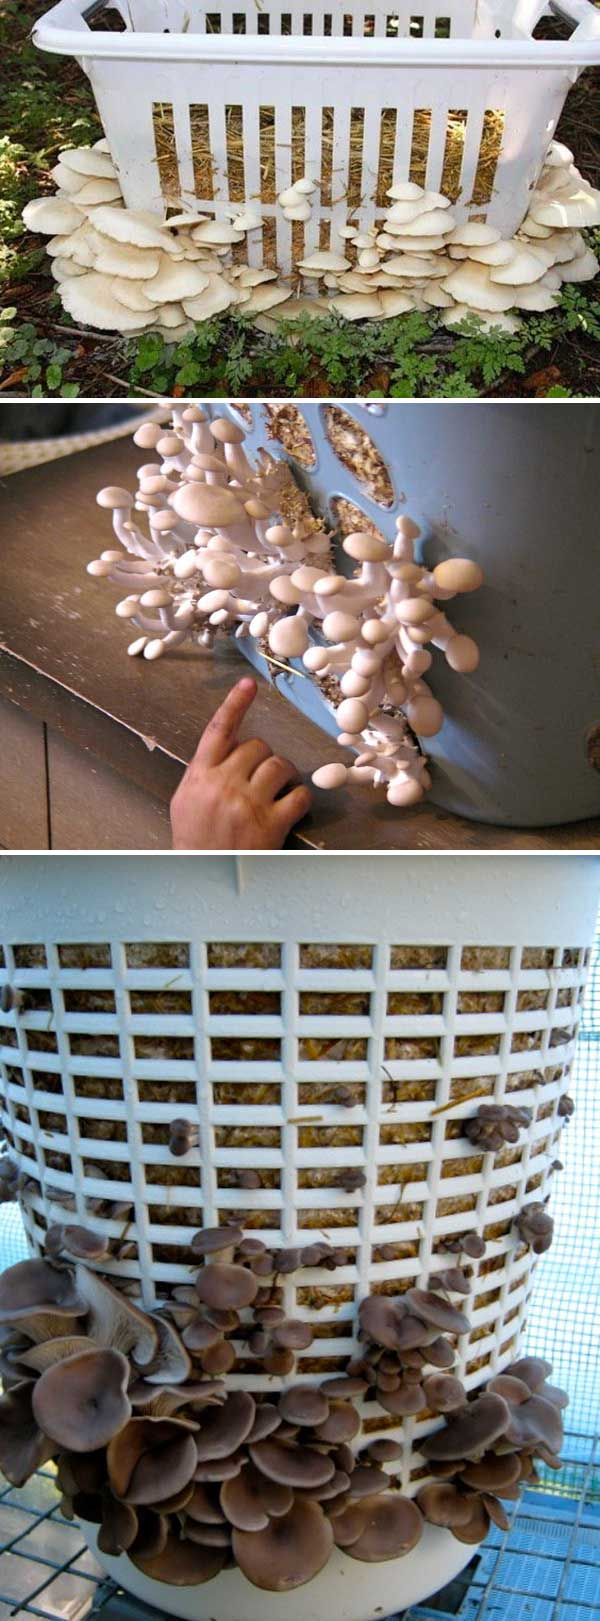 Grow Mushrooms in a Laundry Basket | Clever Gardening Ideas on Low Budget